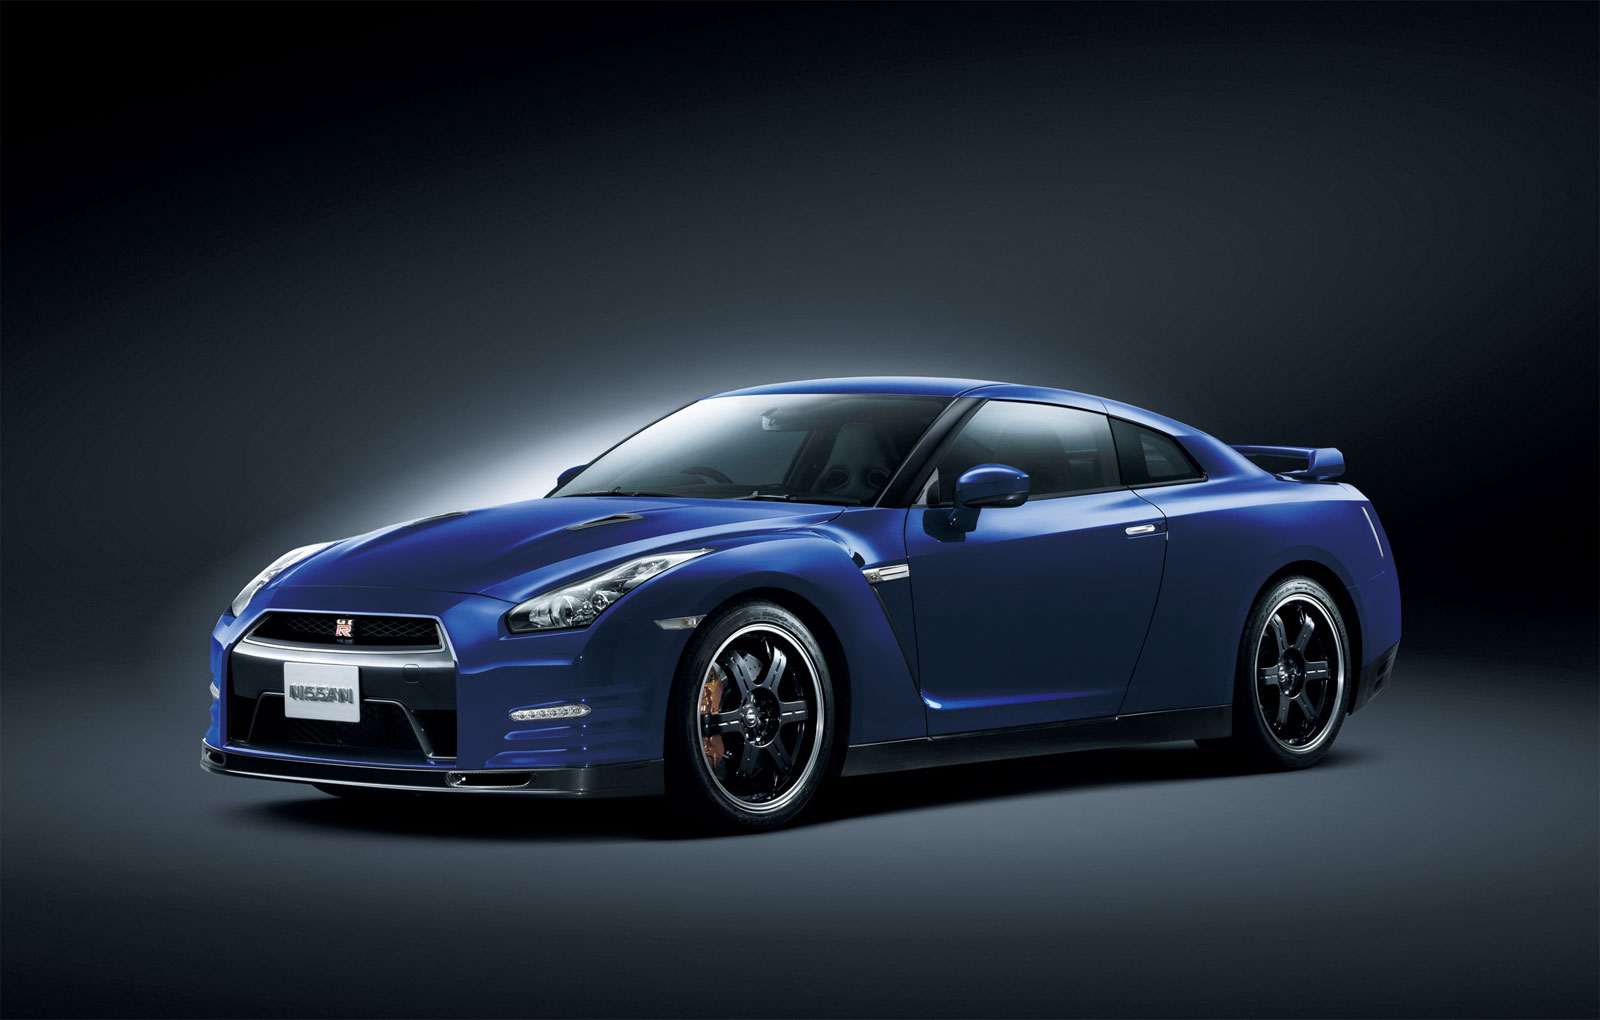 2013 Nissan Gt R Cars Sketches